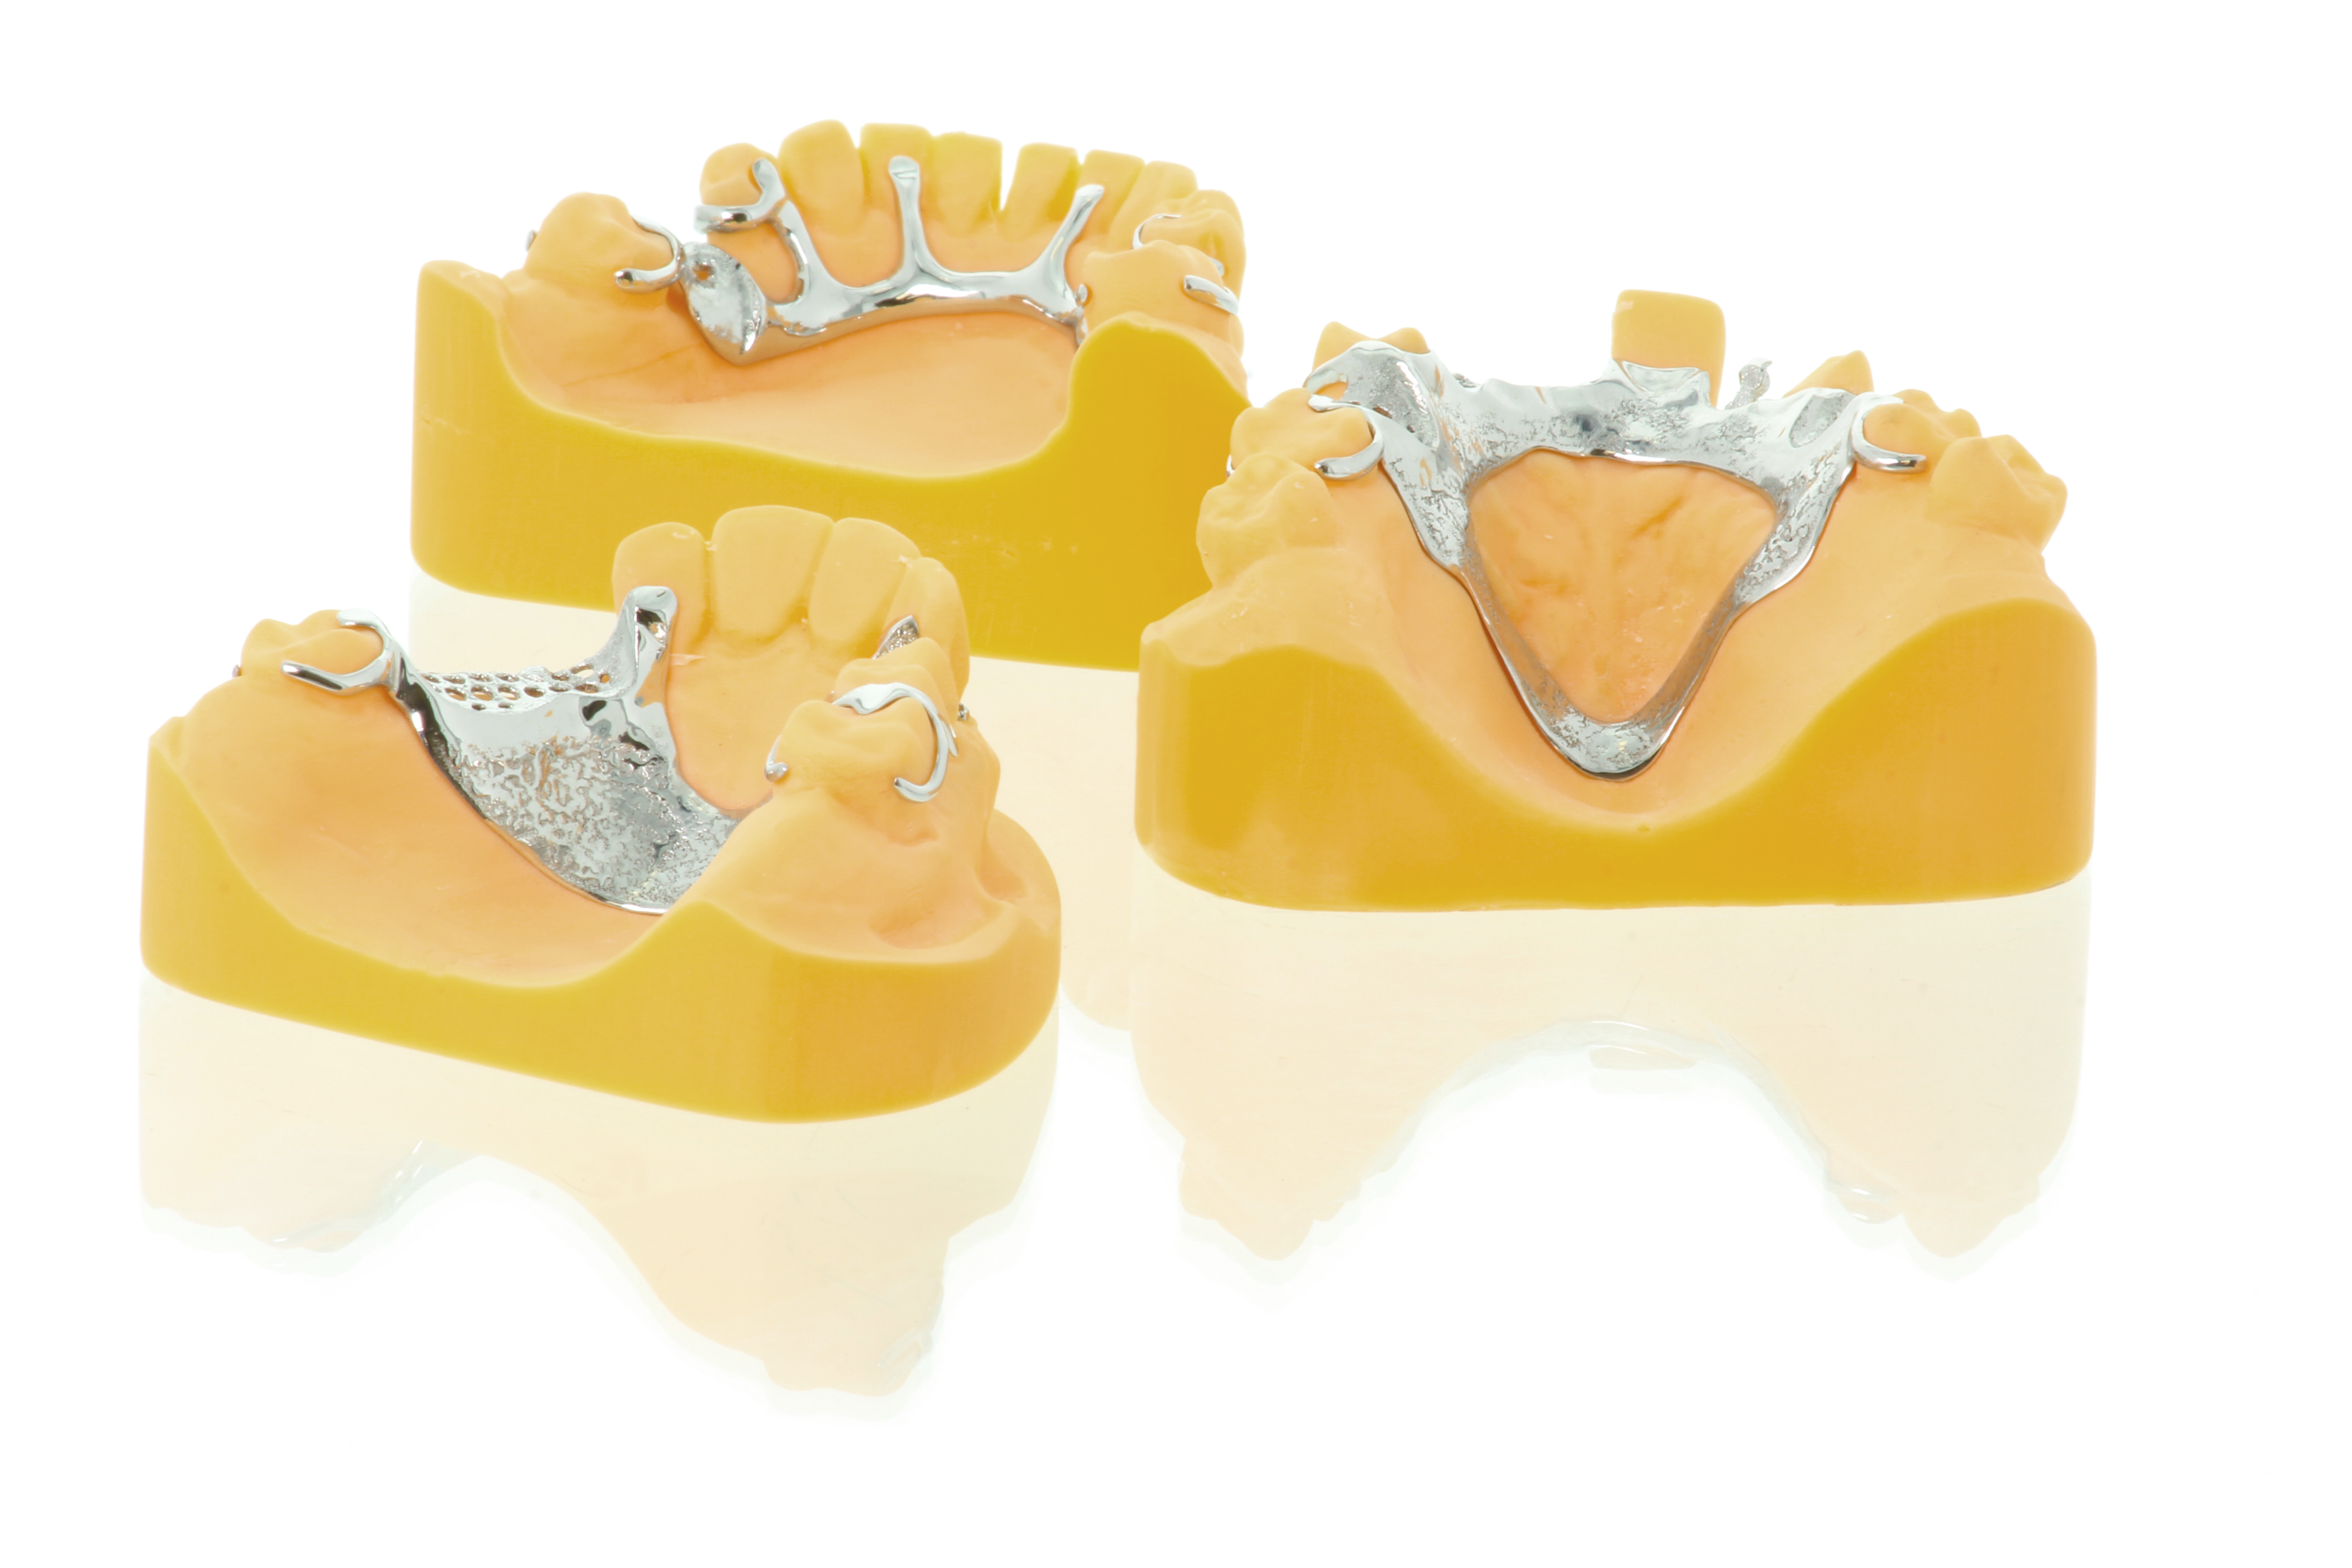 A cluster of various removable partial dentures designed by Gill Egan